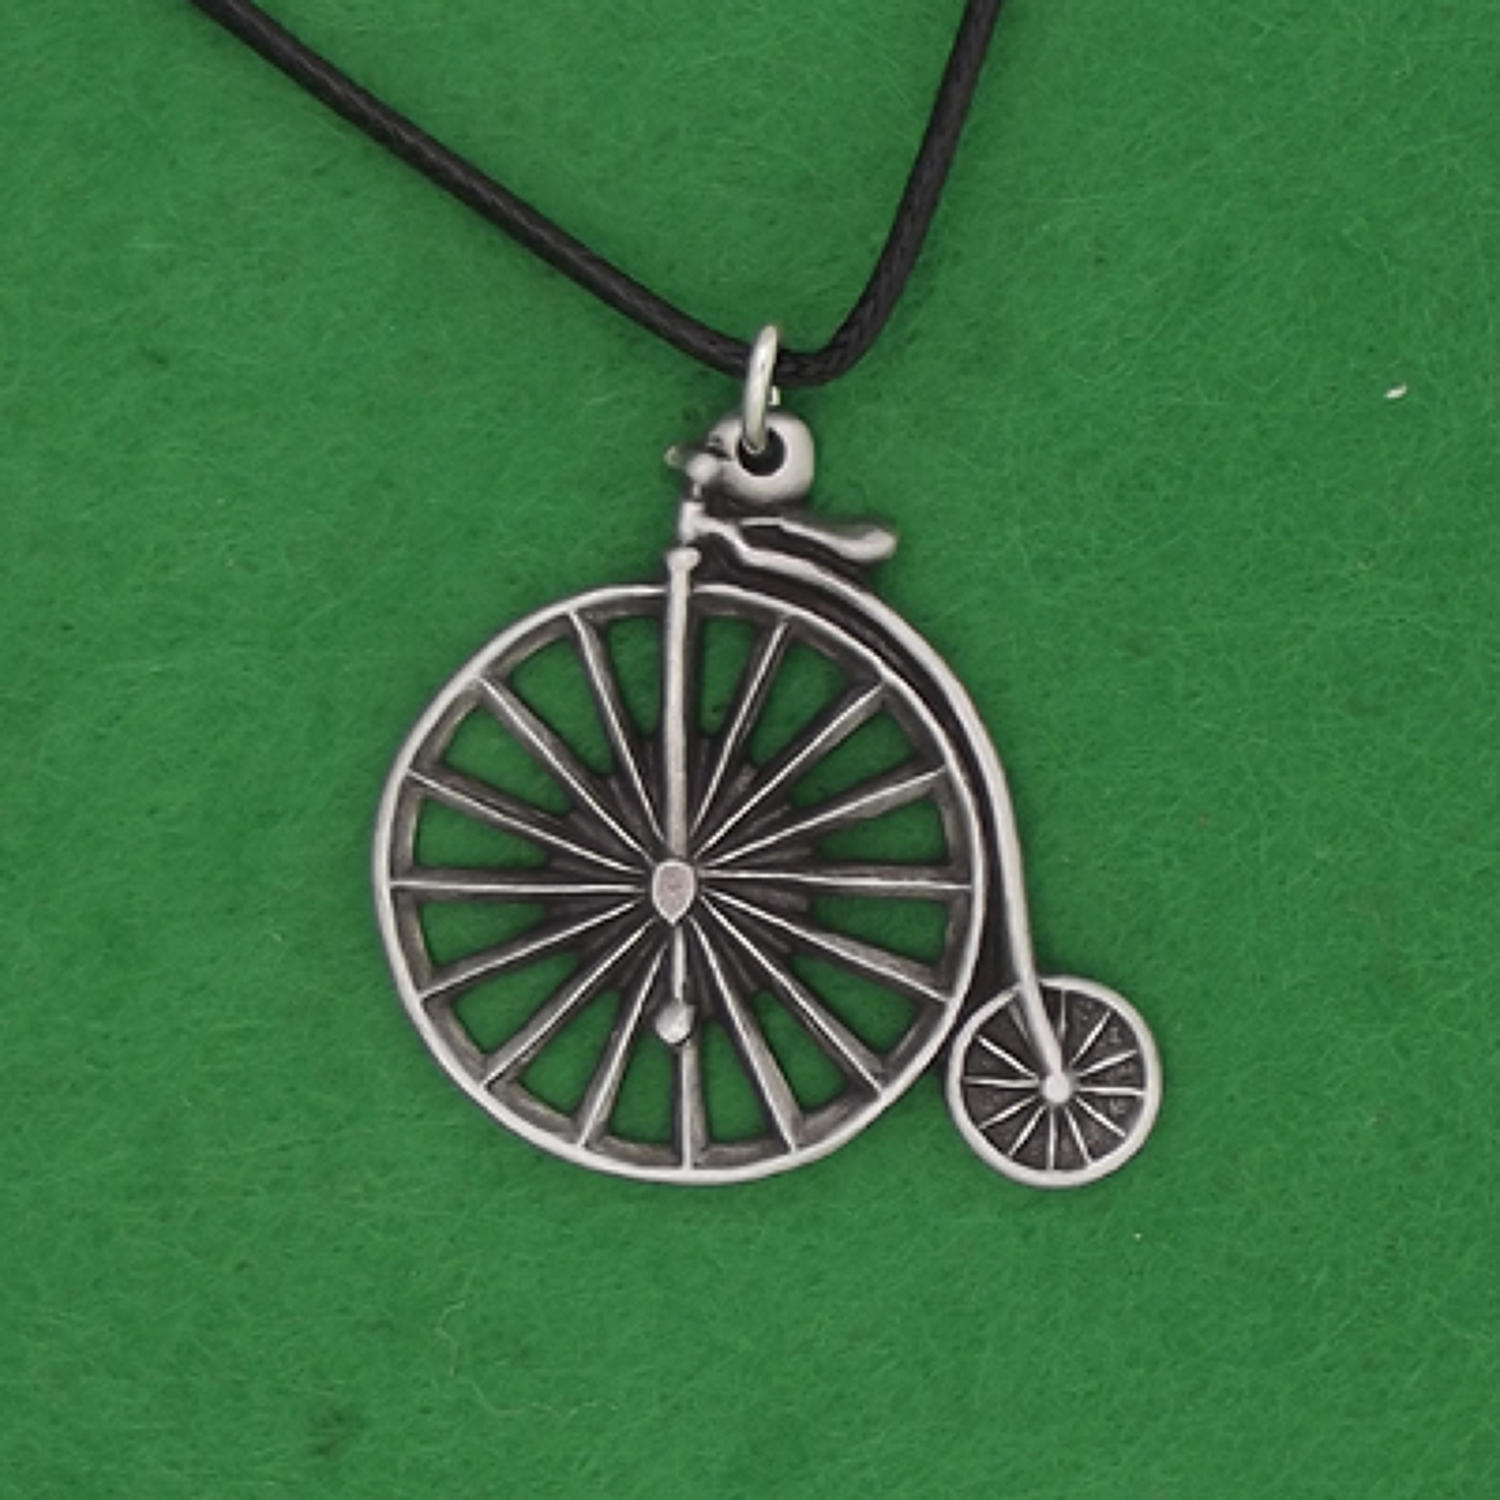 P1221 Penny Farthing